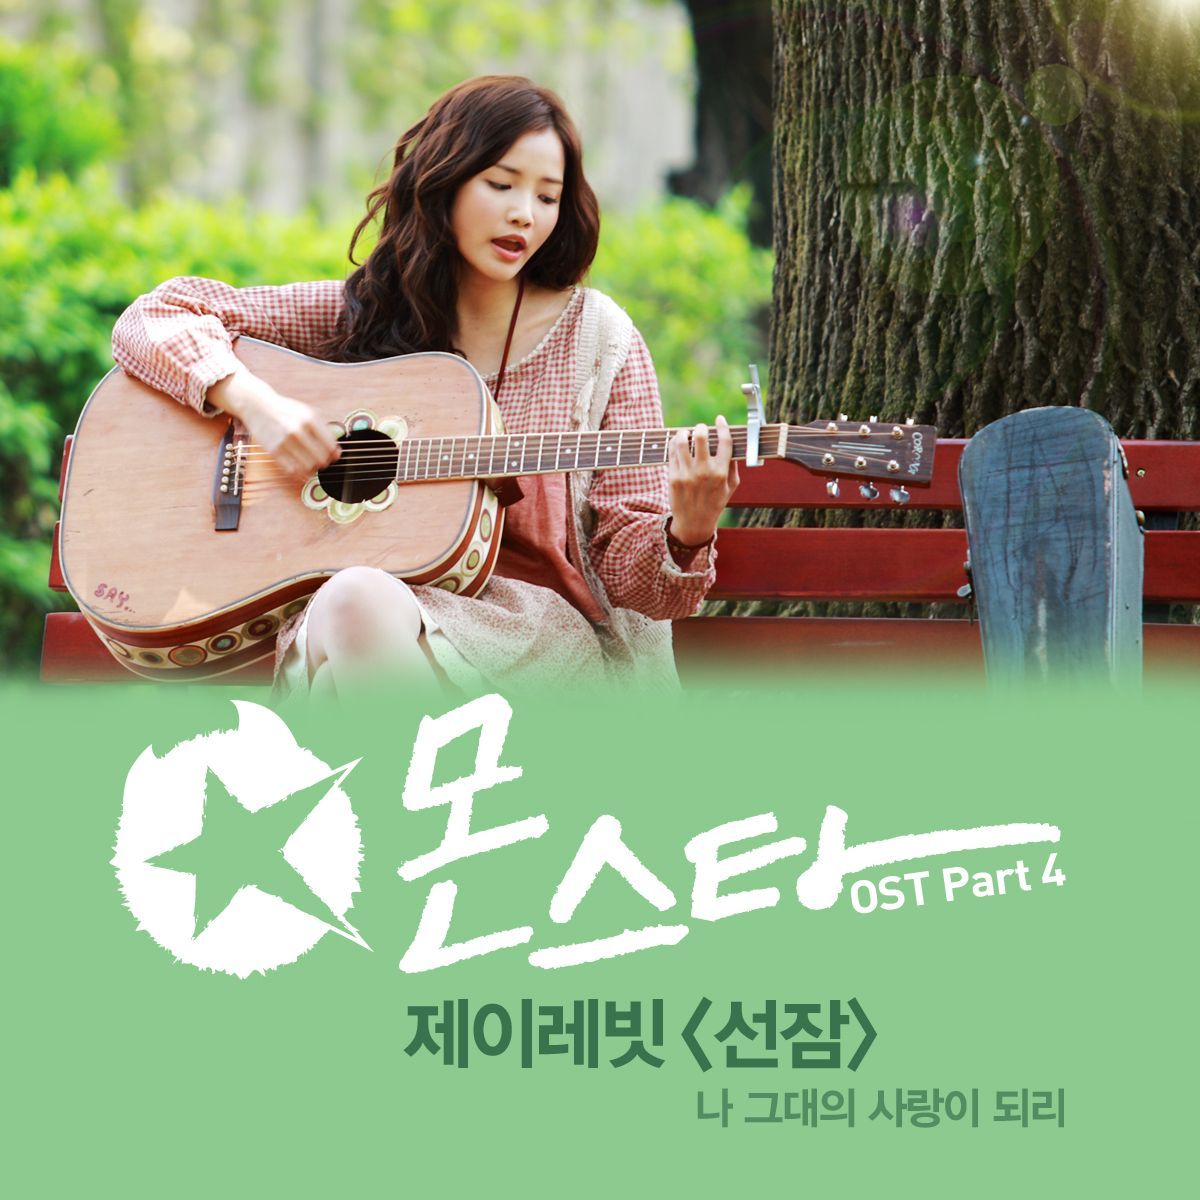 [Single] J Rabbit - Monstar OST Part.4